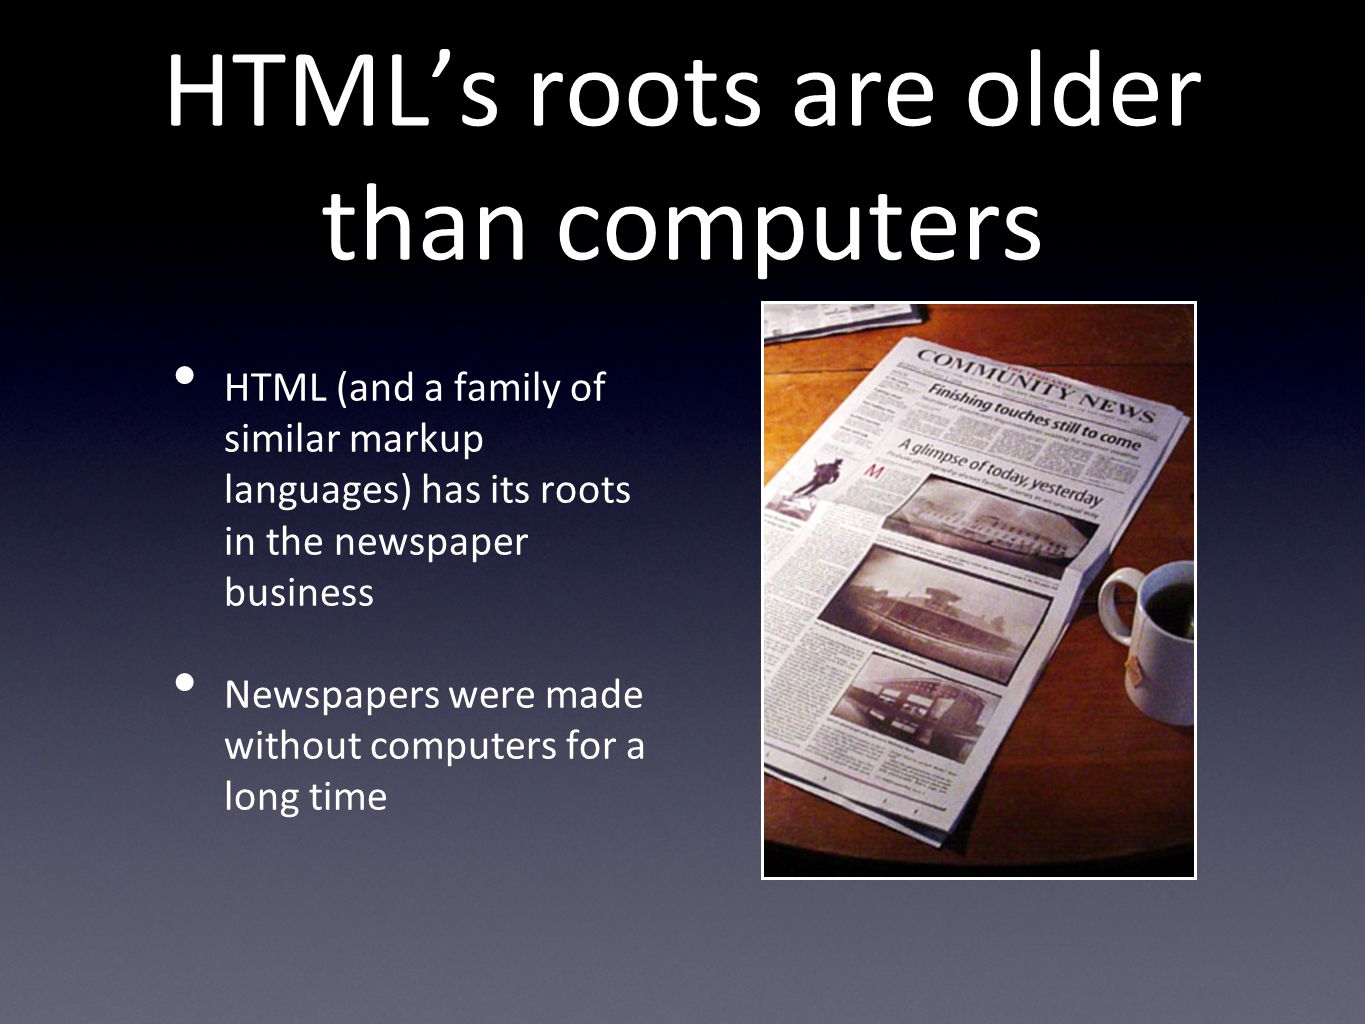 HTMLs roots are older than computers HTML (and a family of similar markup languages) has its roots in the newspaper business Newspapers were made without computers for a long time